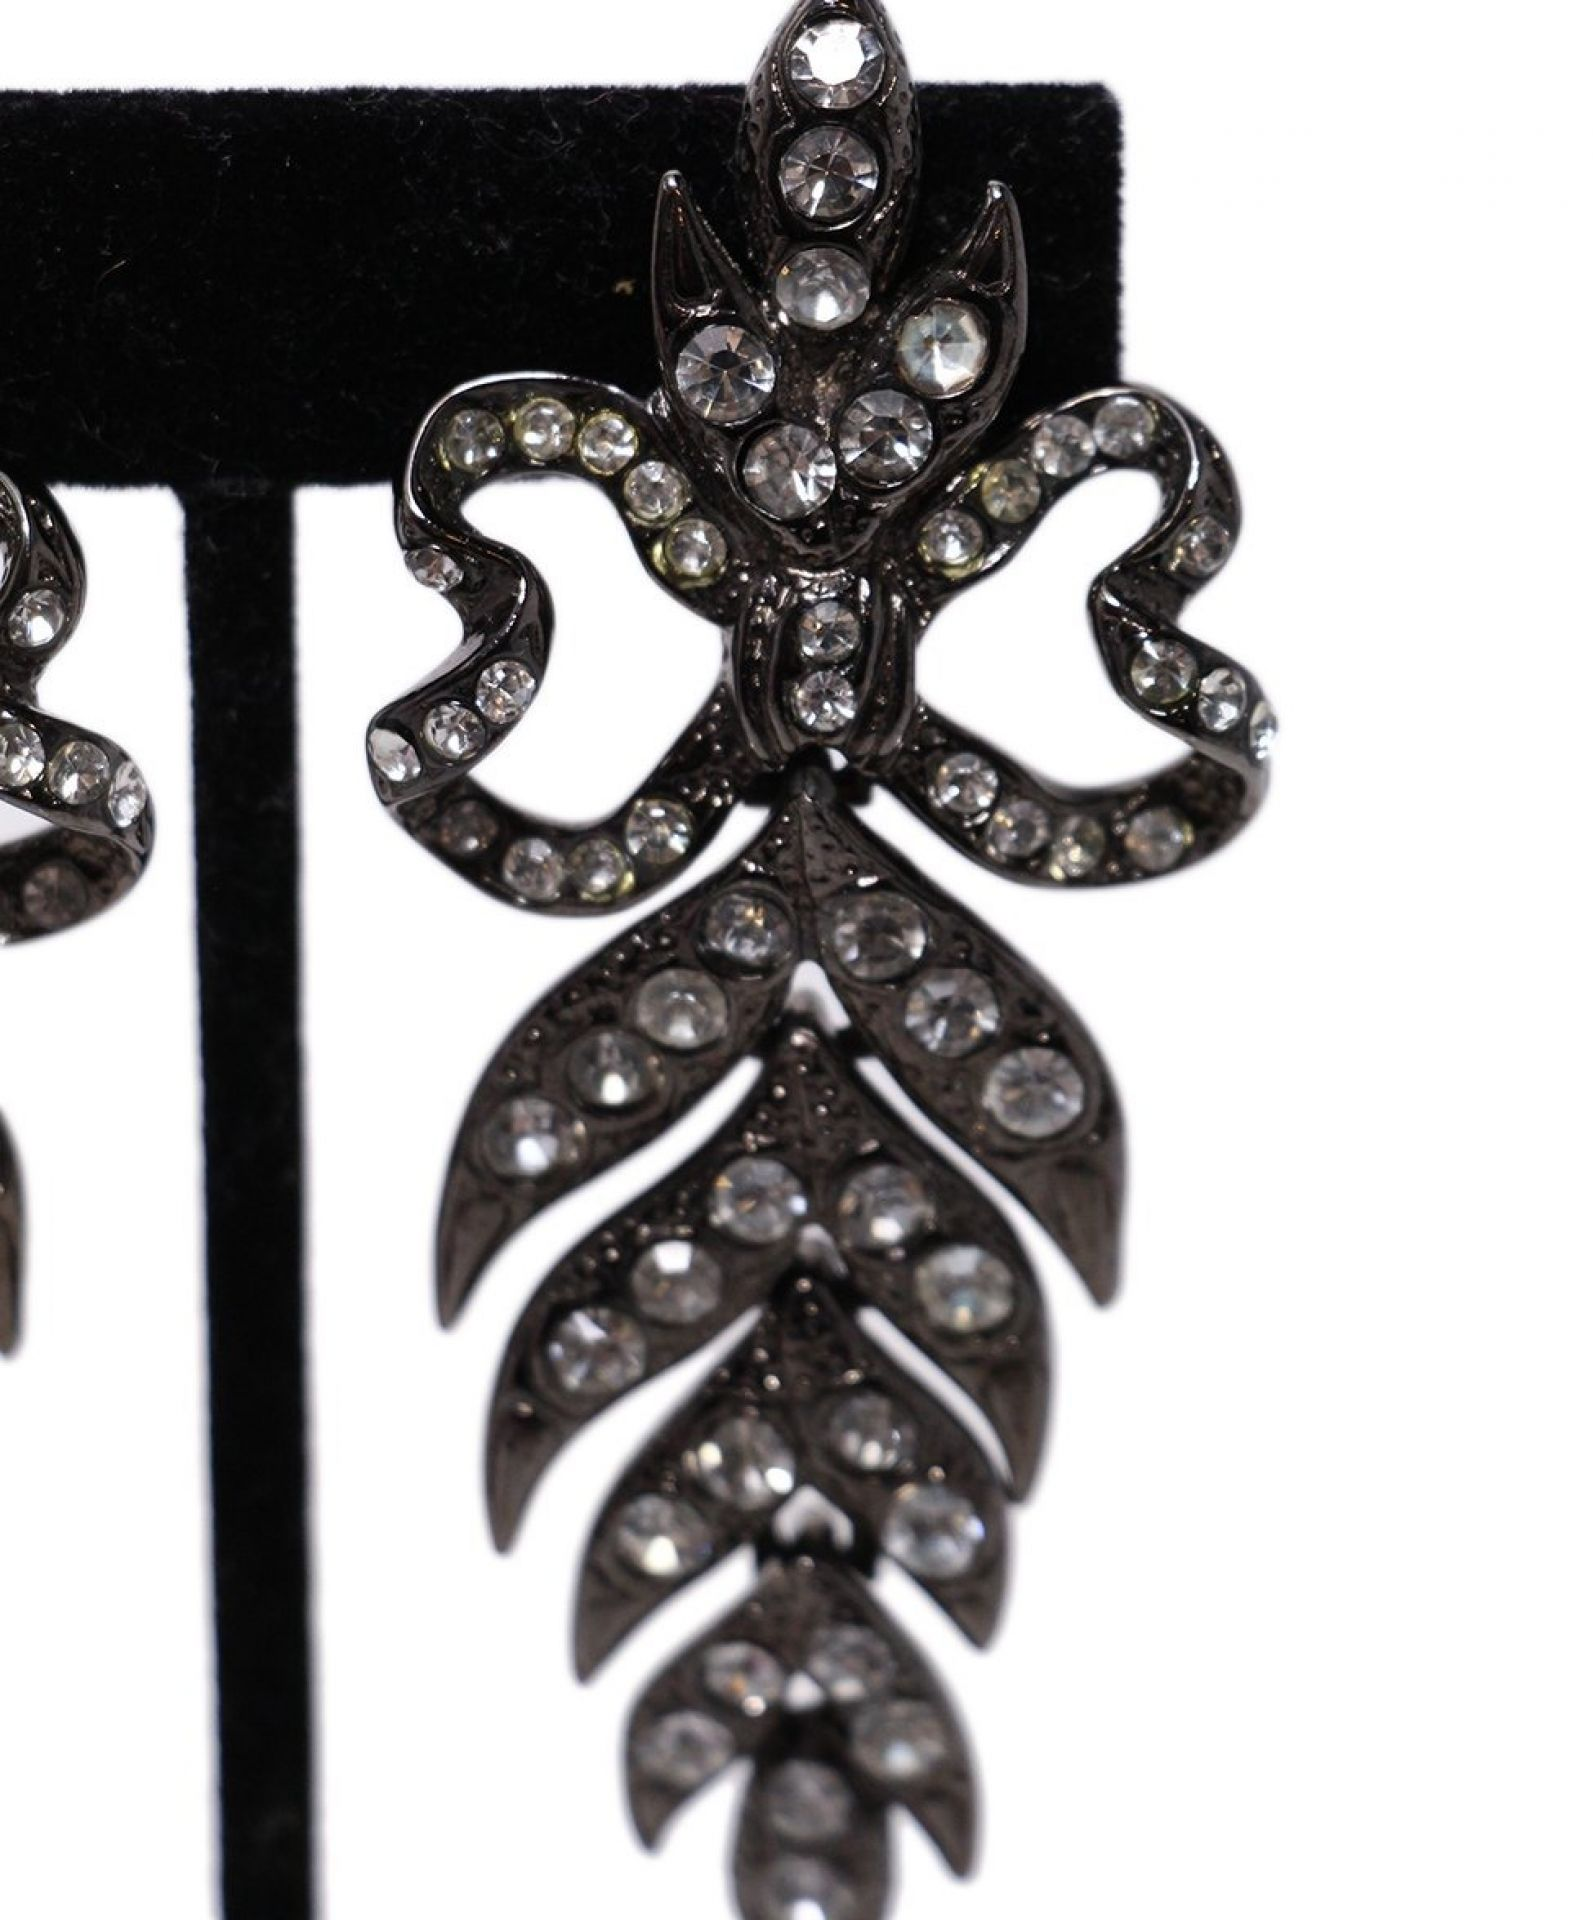 YSL OXIDIZED METALLIC GUNMETAL RHINESTONE CLIP-ON EARRINGS